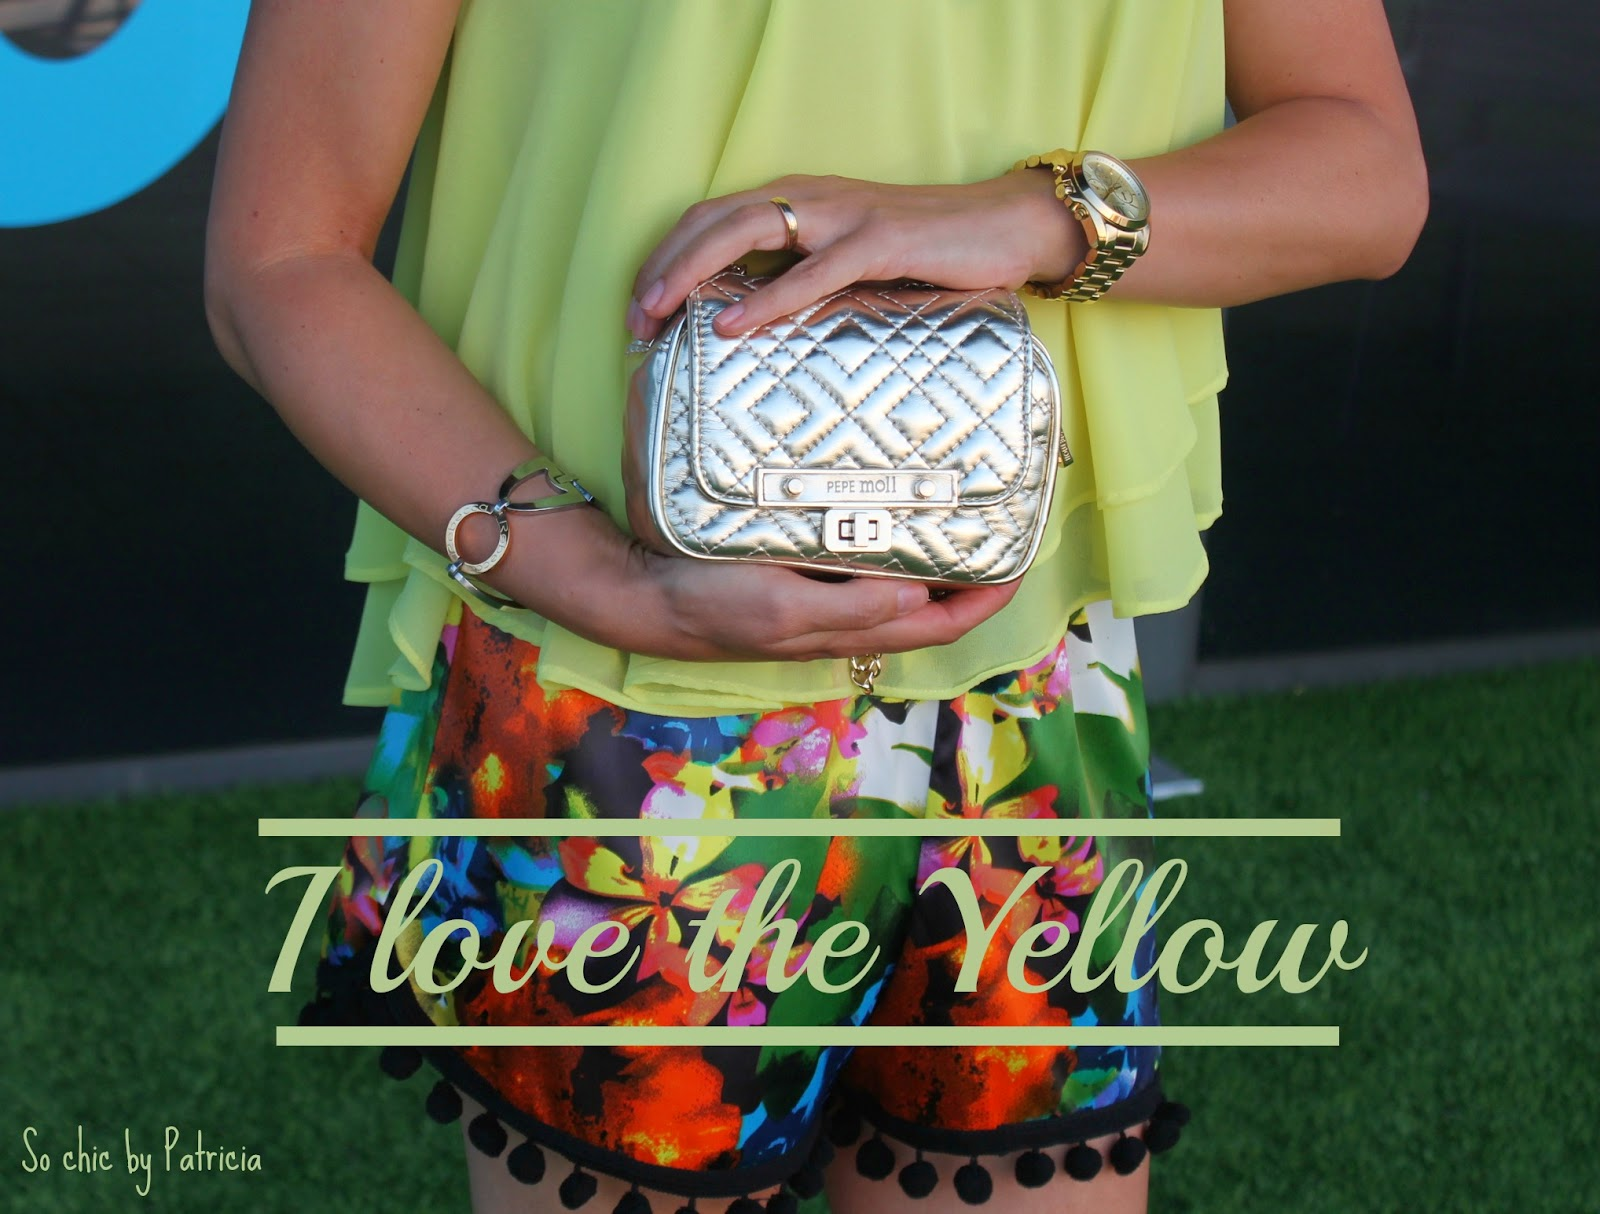 Yellow_So chic by Patricia